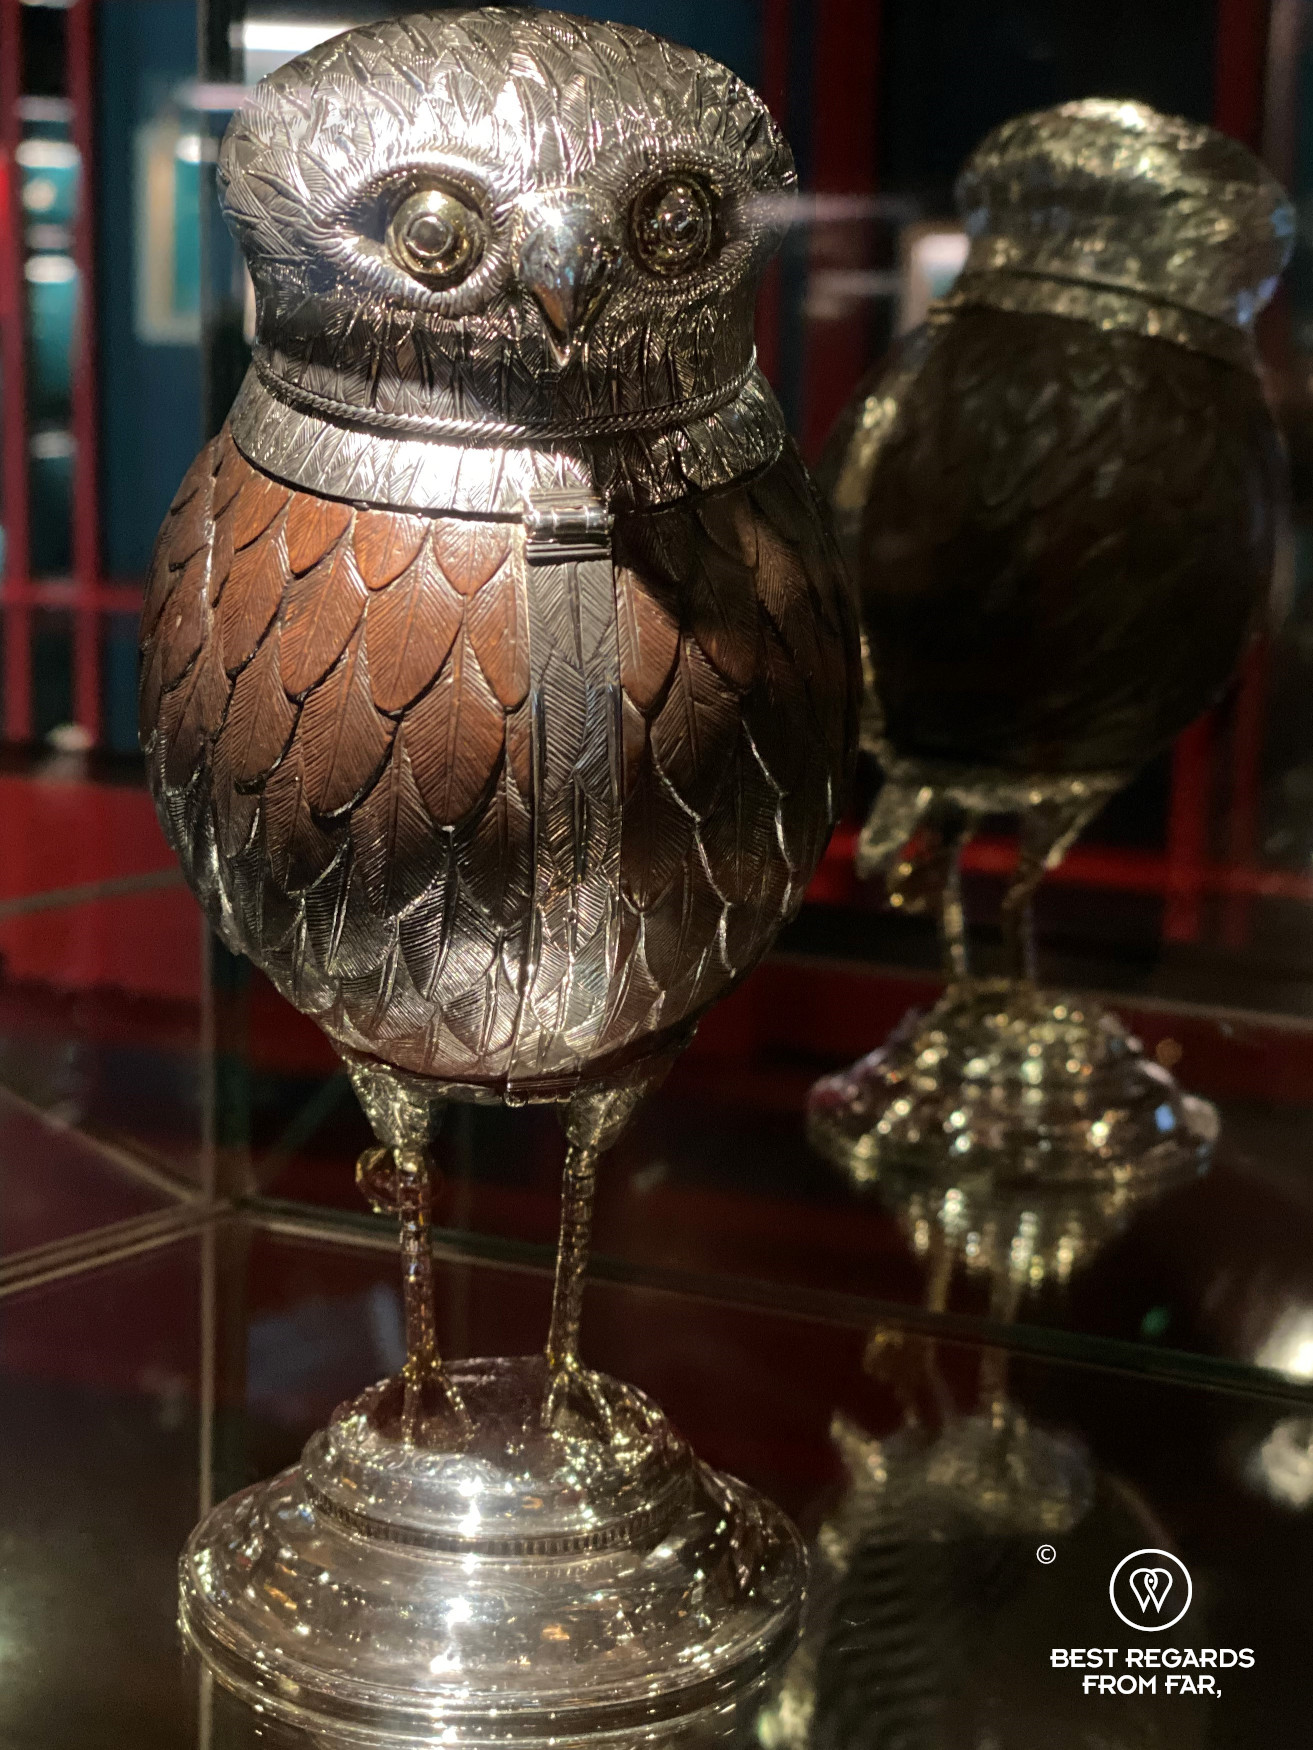 Silver owl cup from 1549, DIVA museum, Antwerp